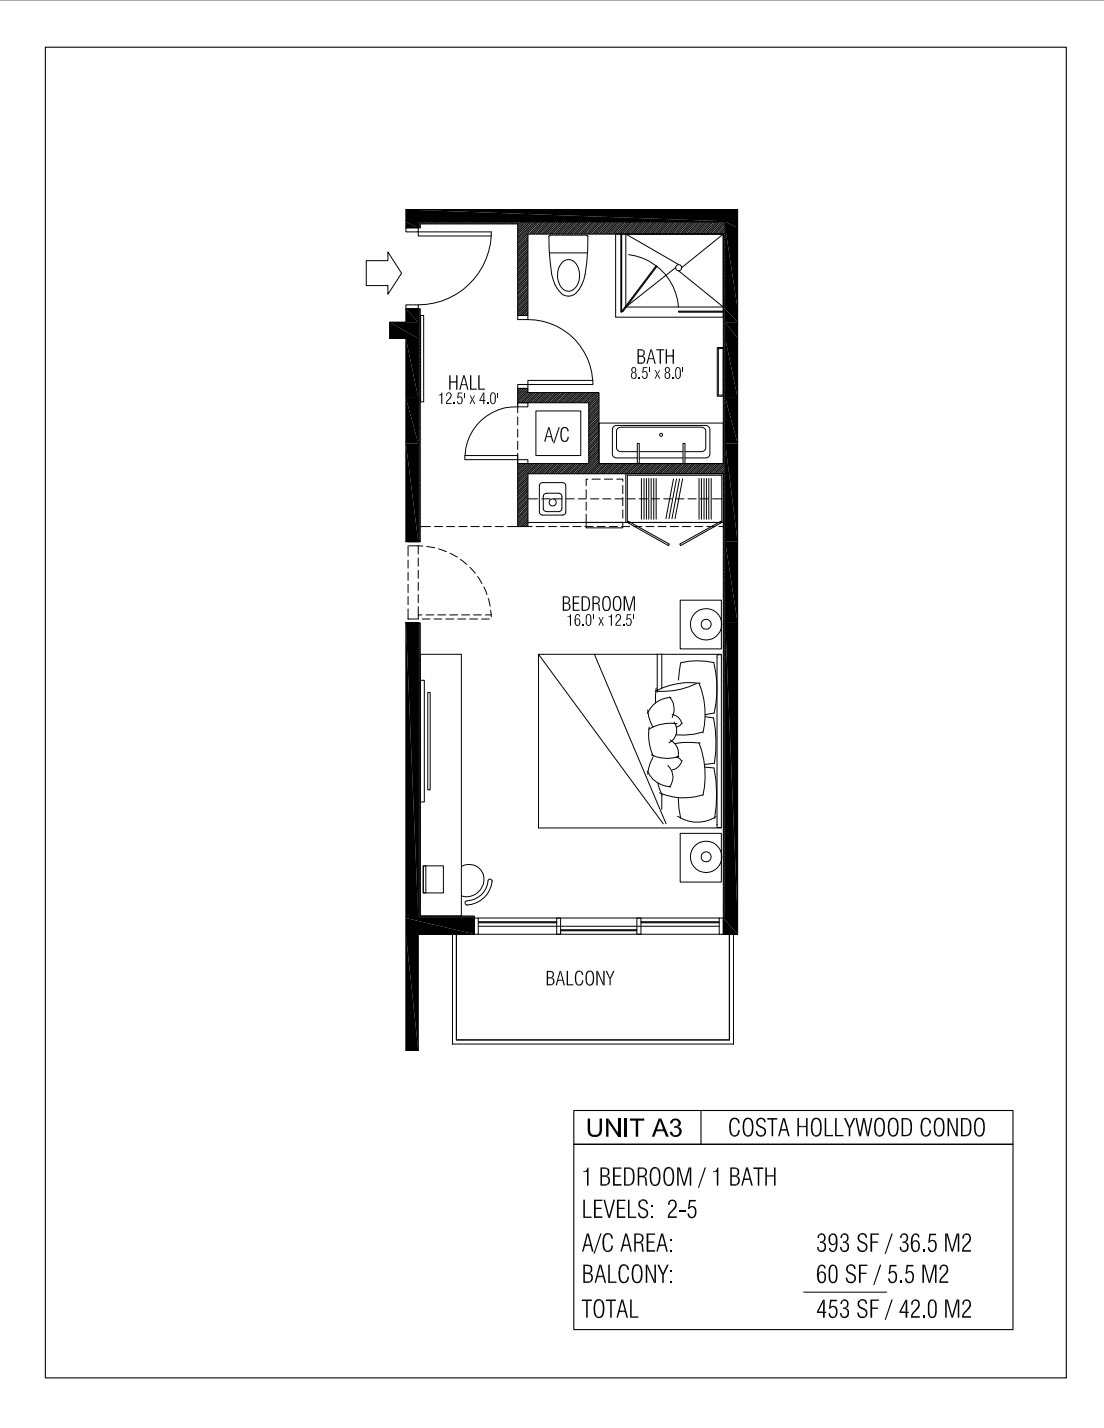 Melia Costa Hollywood - Floorplan 5